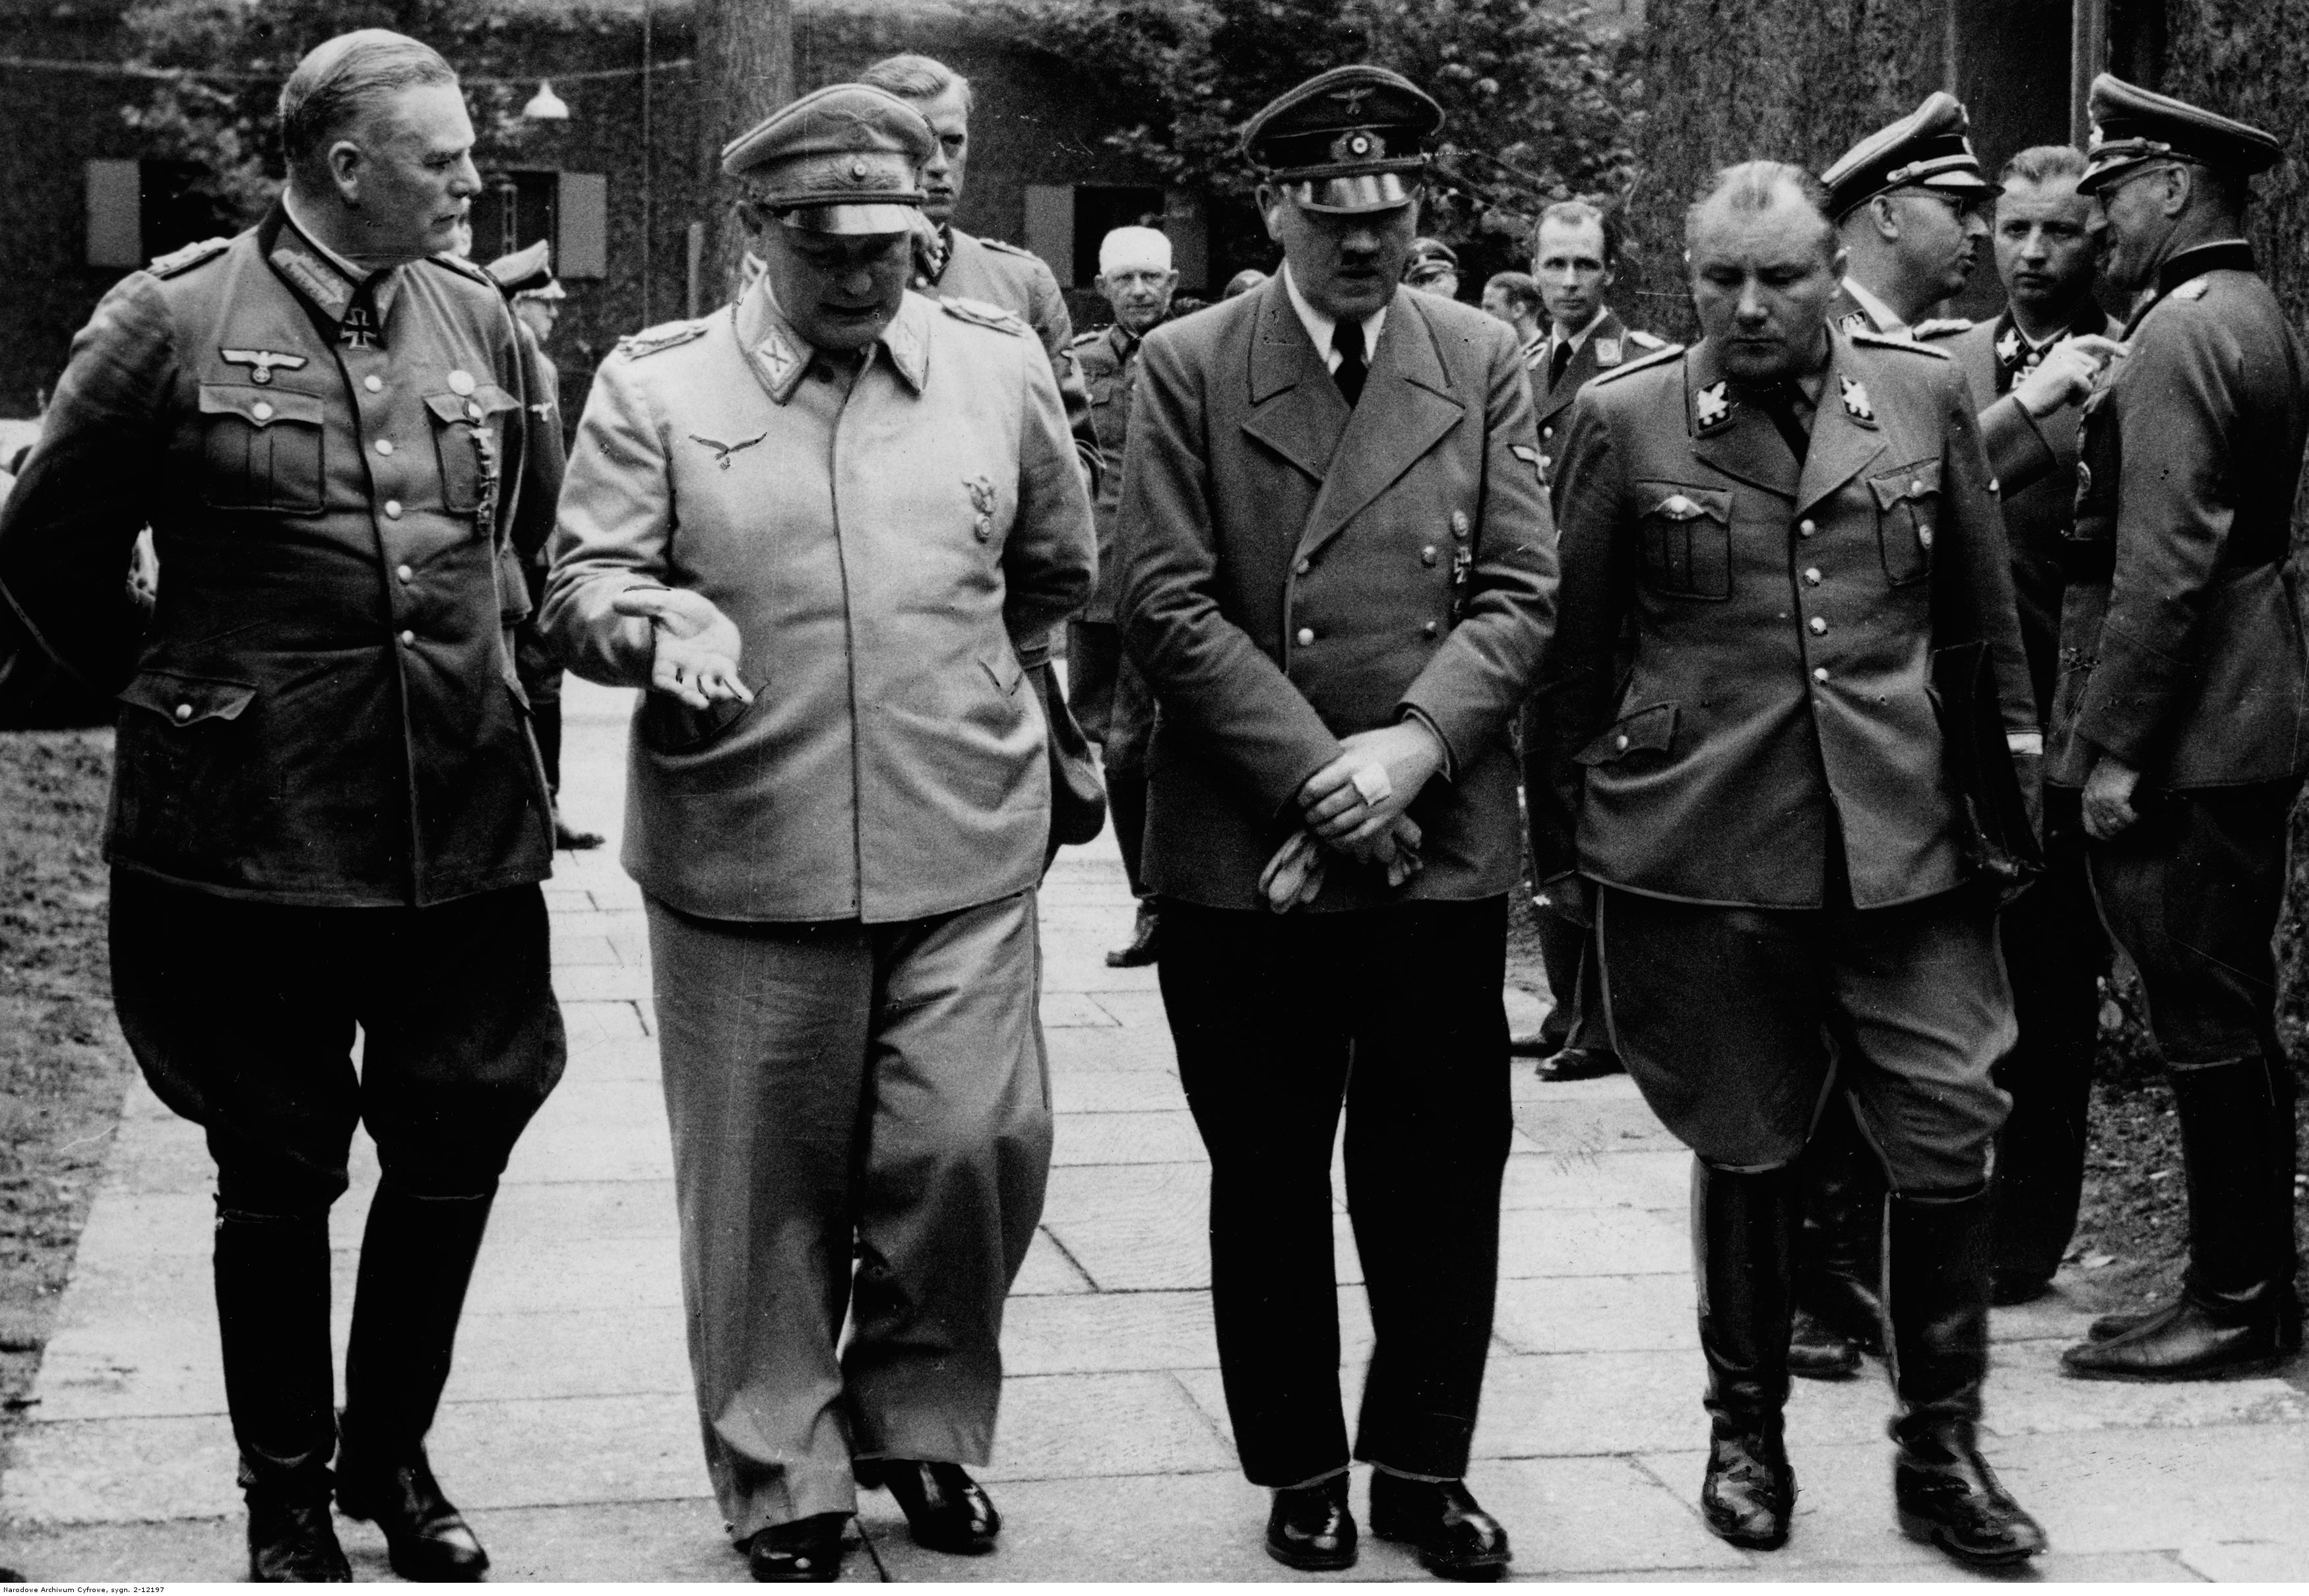 Adolf Hitler with Hermann Göring, Wilhelm Keitel and Martin Bormann at the Wolfsschanze the afternoon after the failed bomb attempt